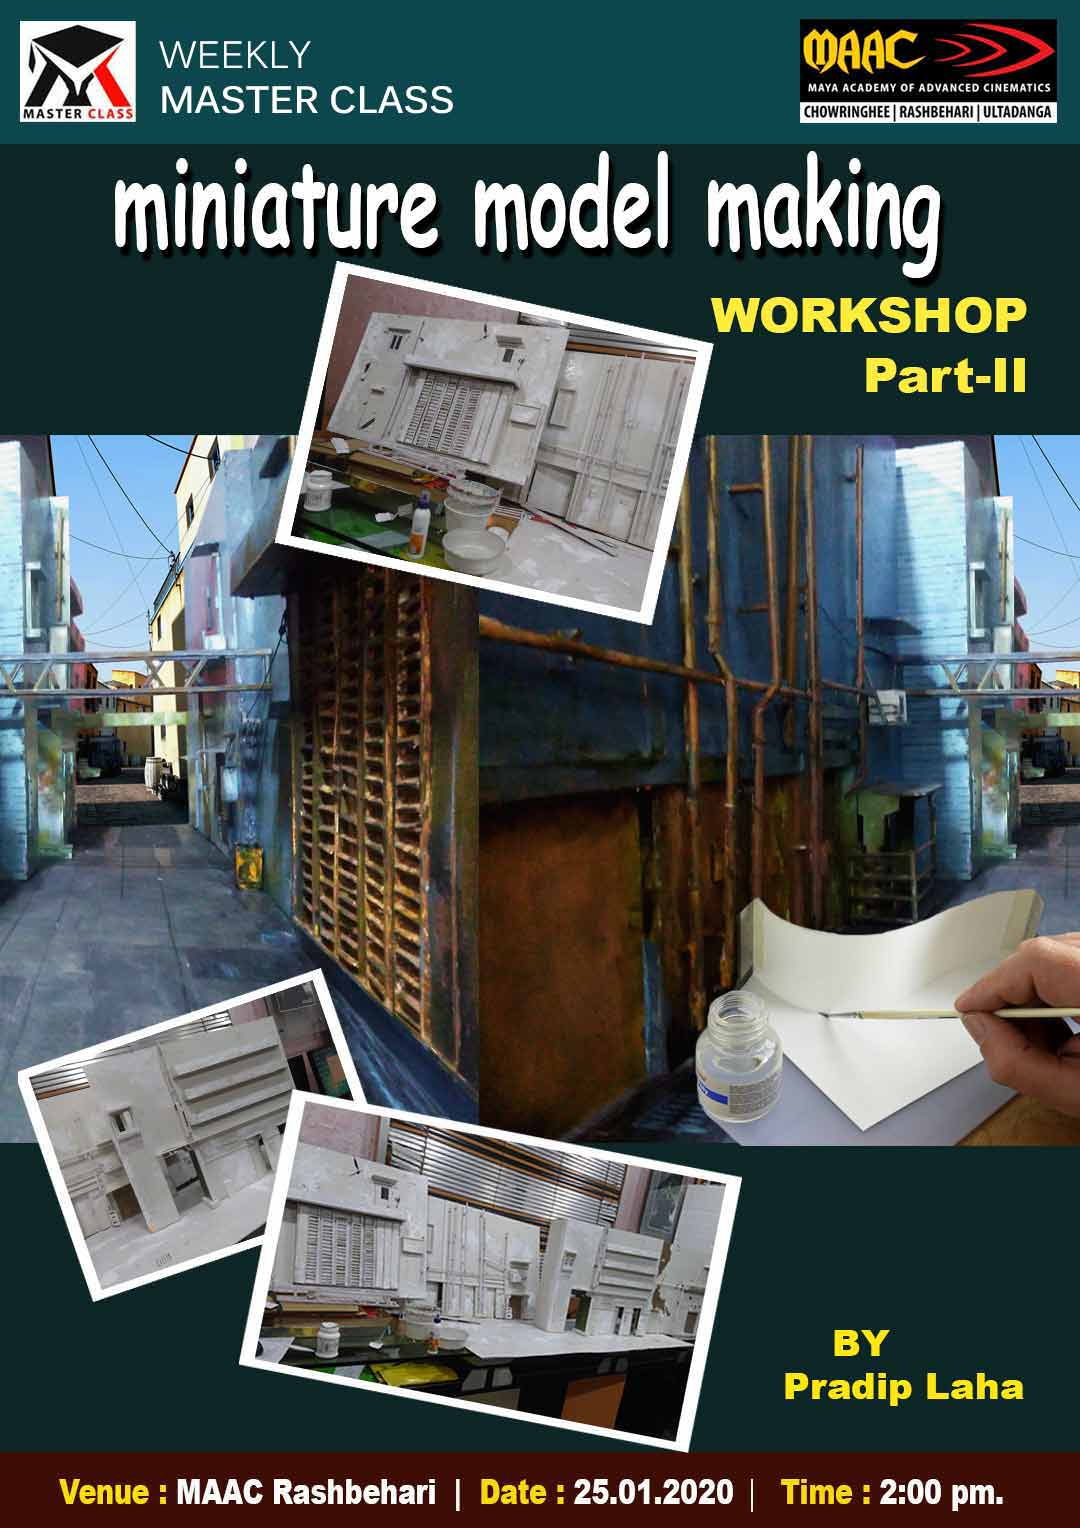 Weekly Master Class on Miniature Model Making Workshop Phase 2